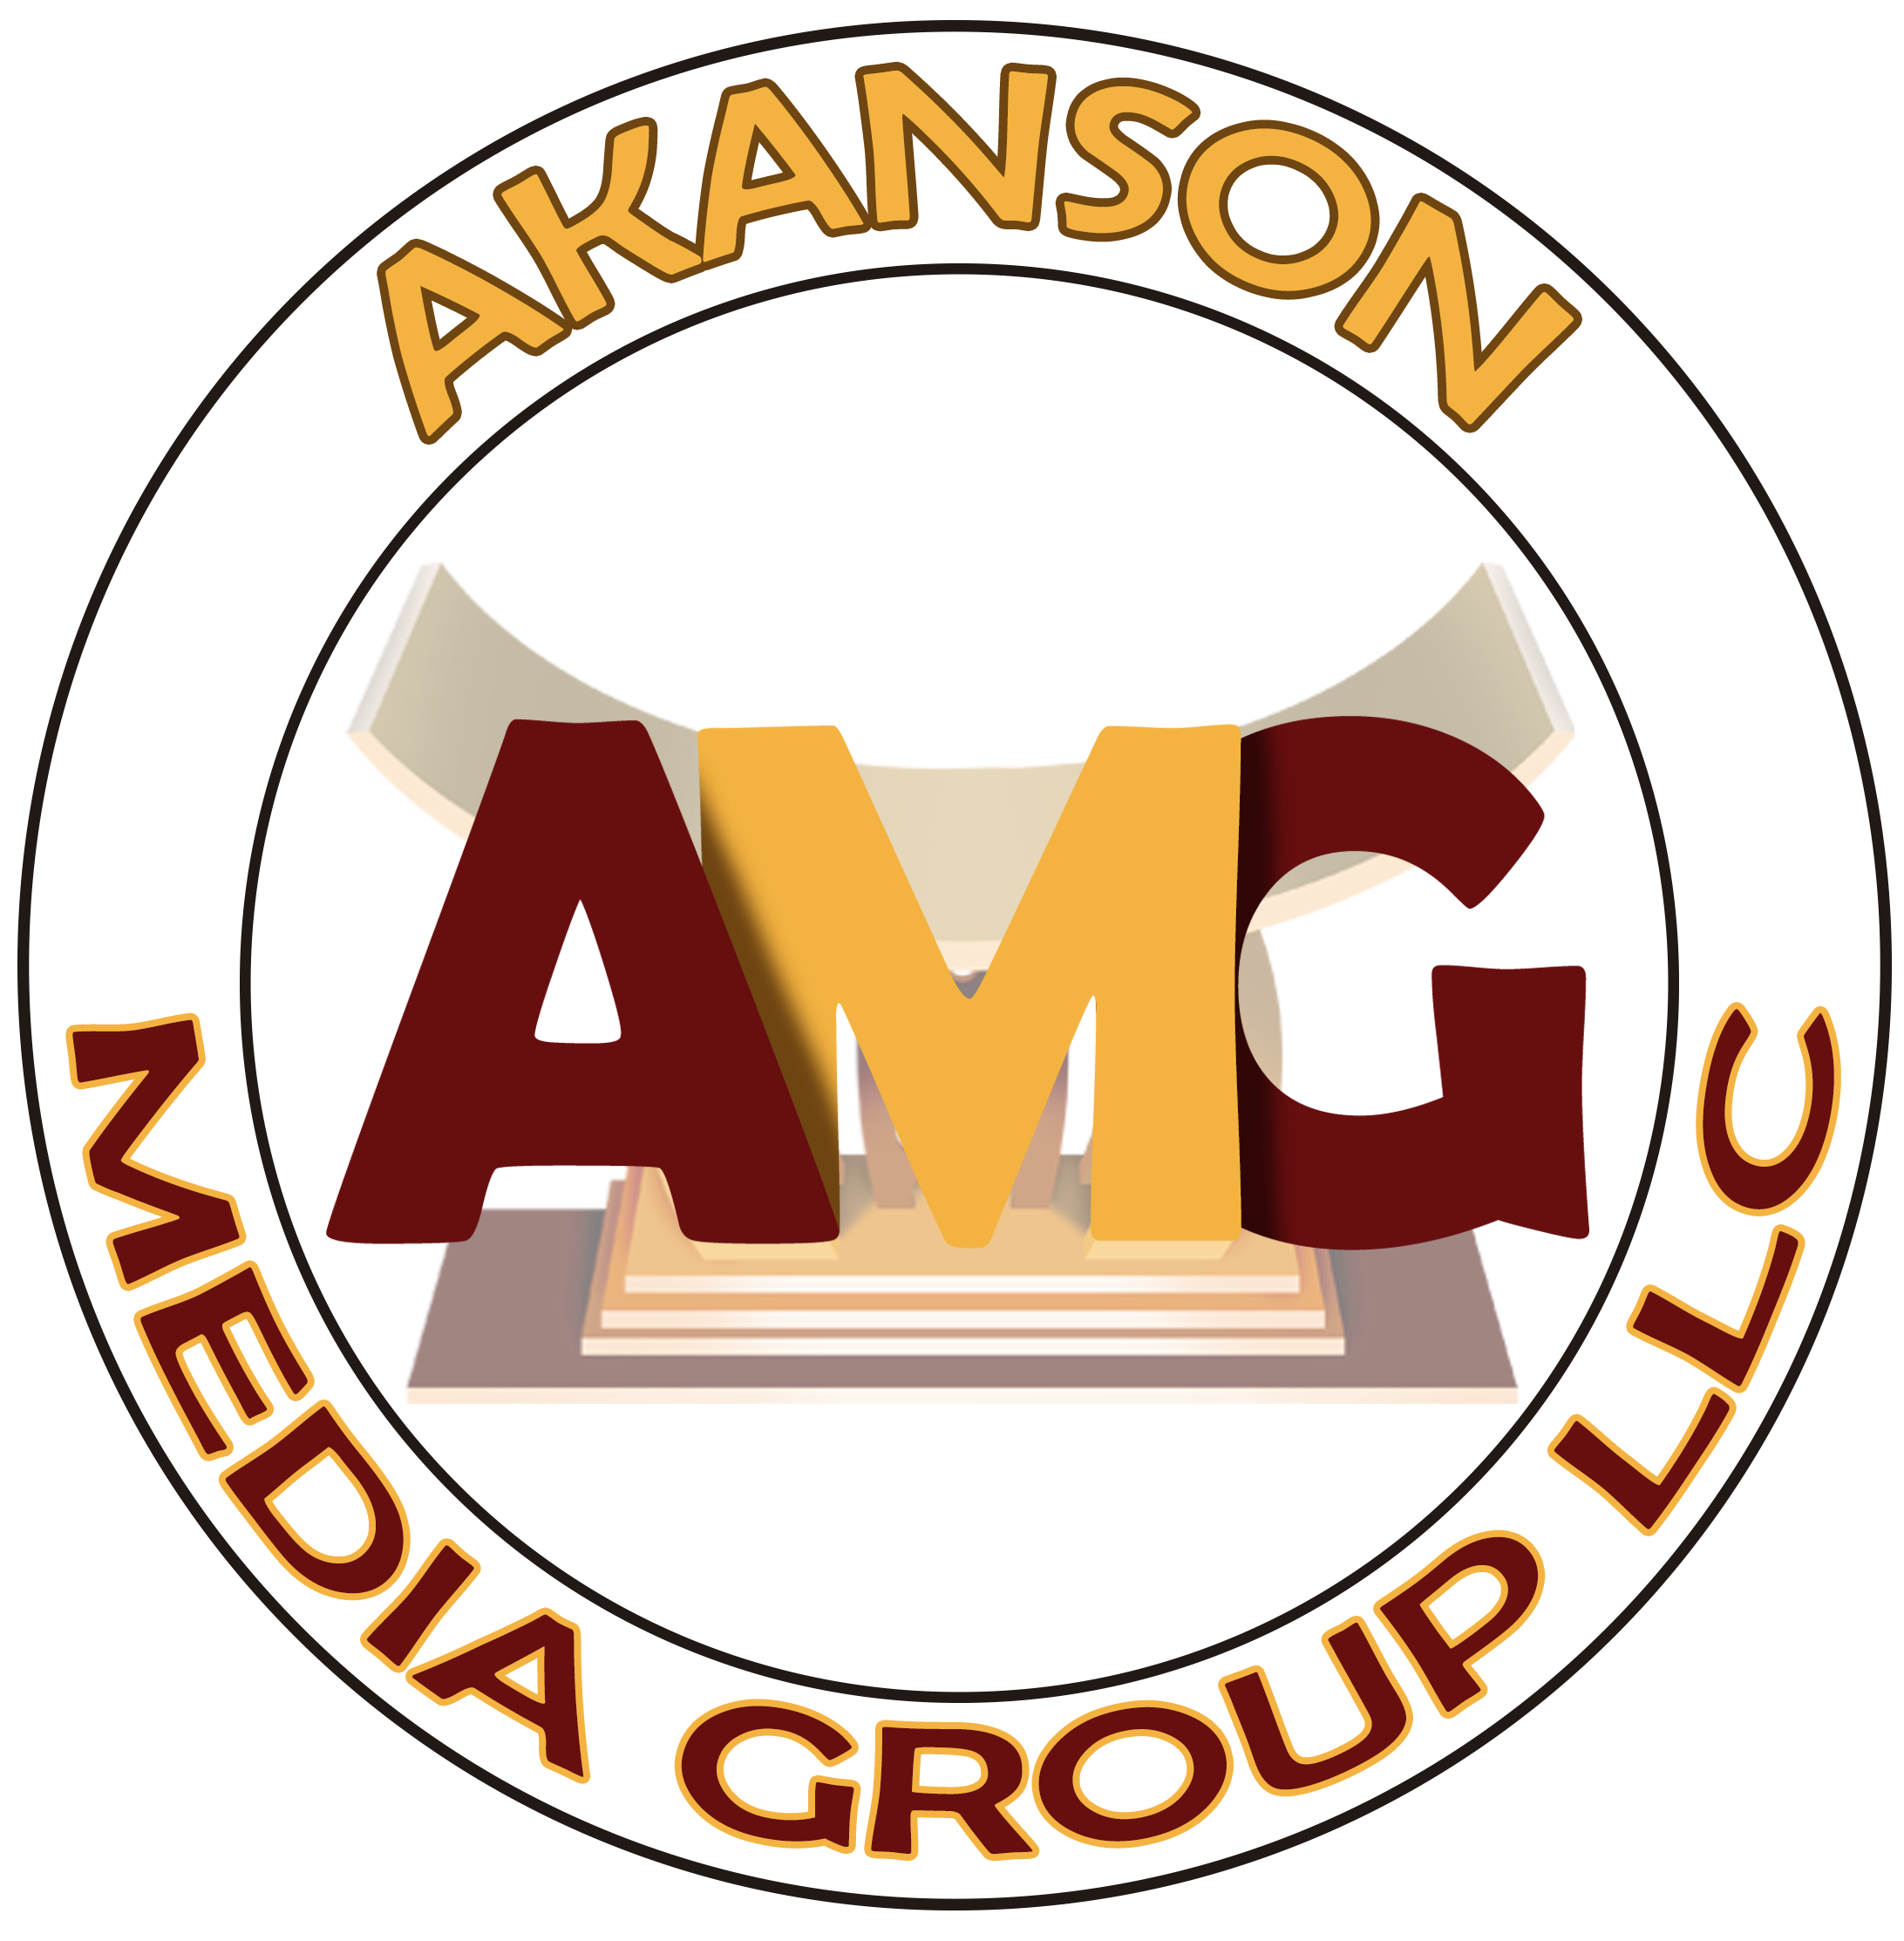 Akanson Media Group, LLC